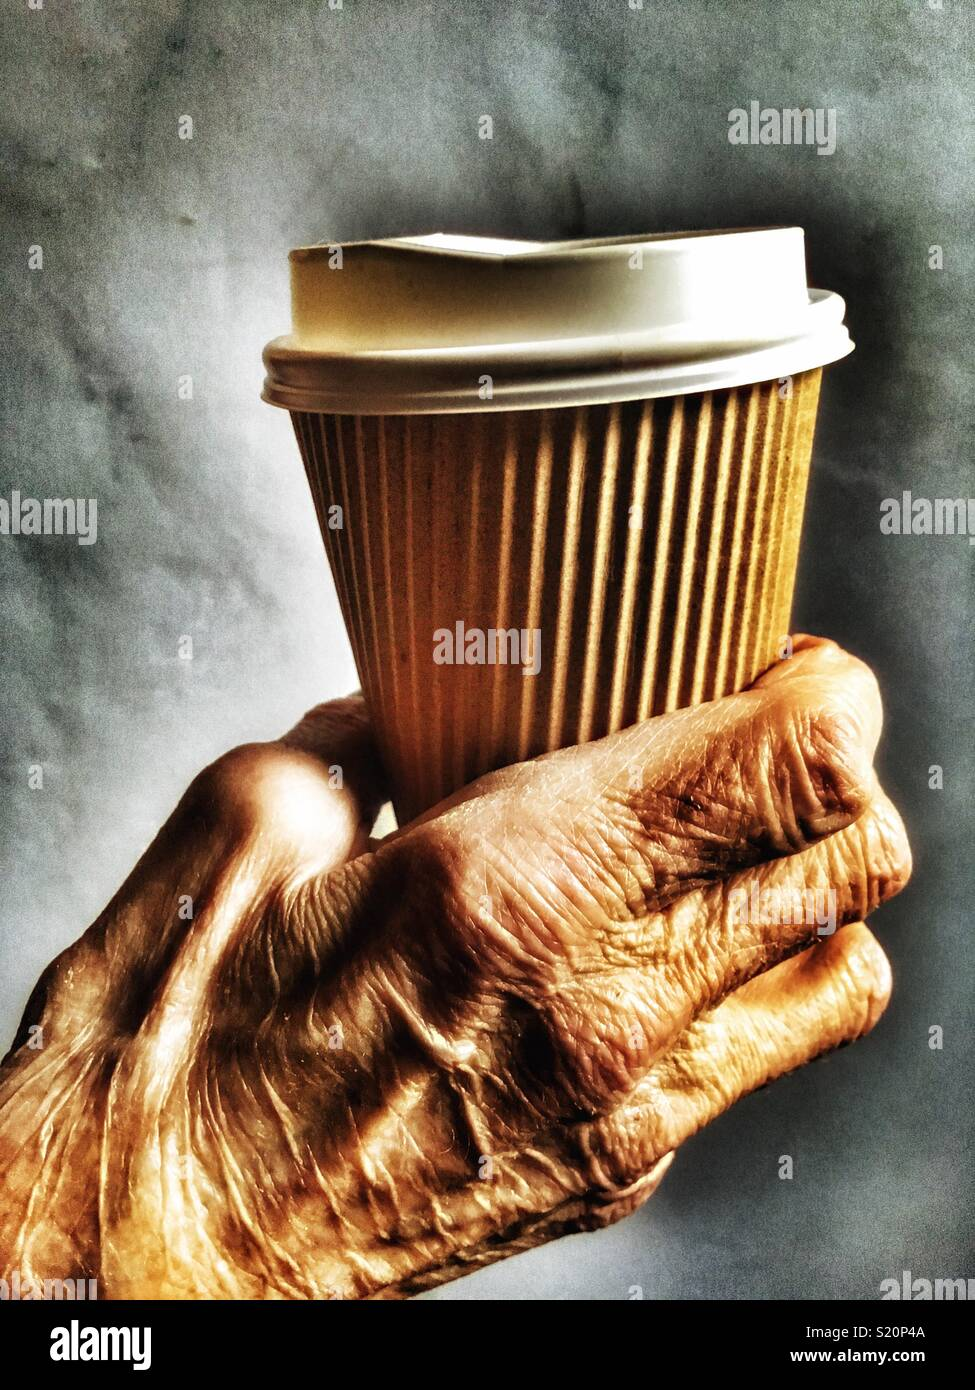 Non-recyclable coffee cup - Stock Image